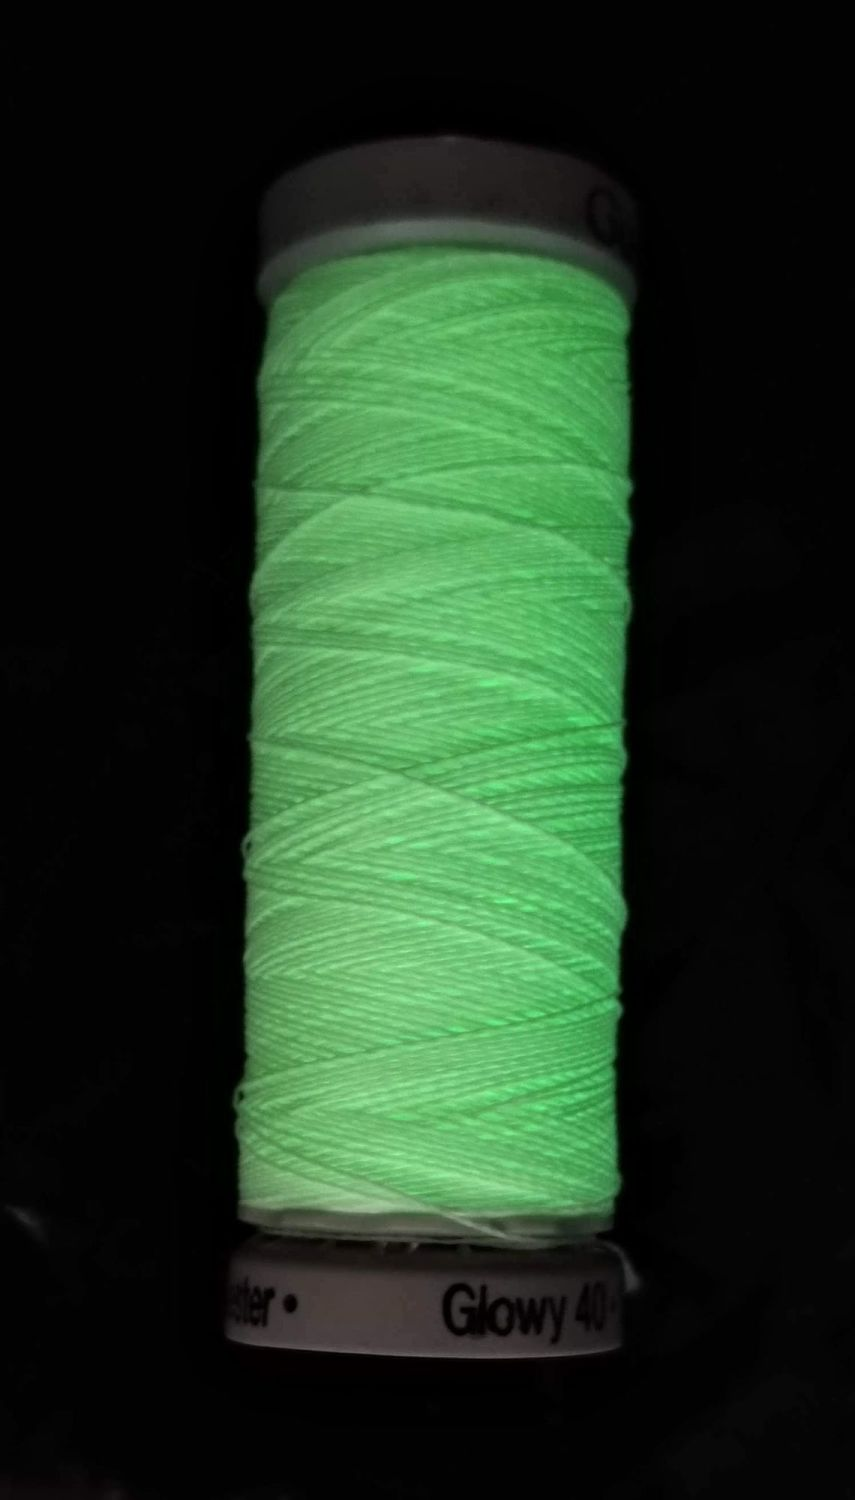 Glow in the dark thread, colour 8